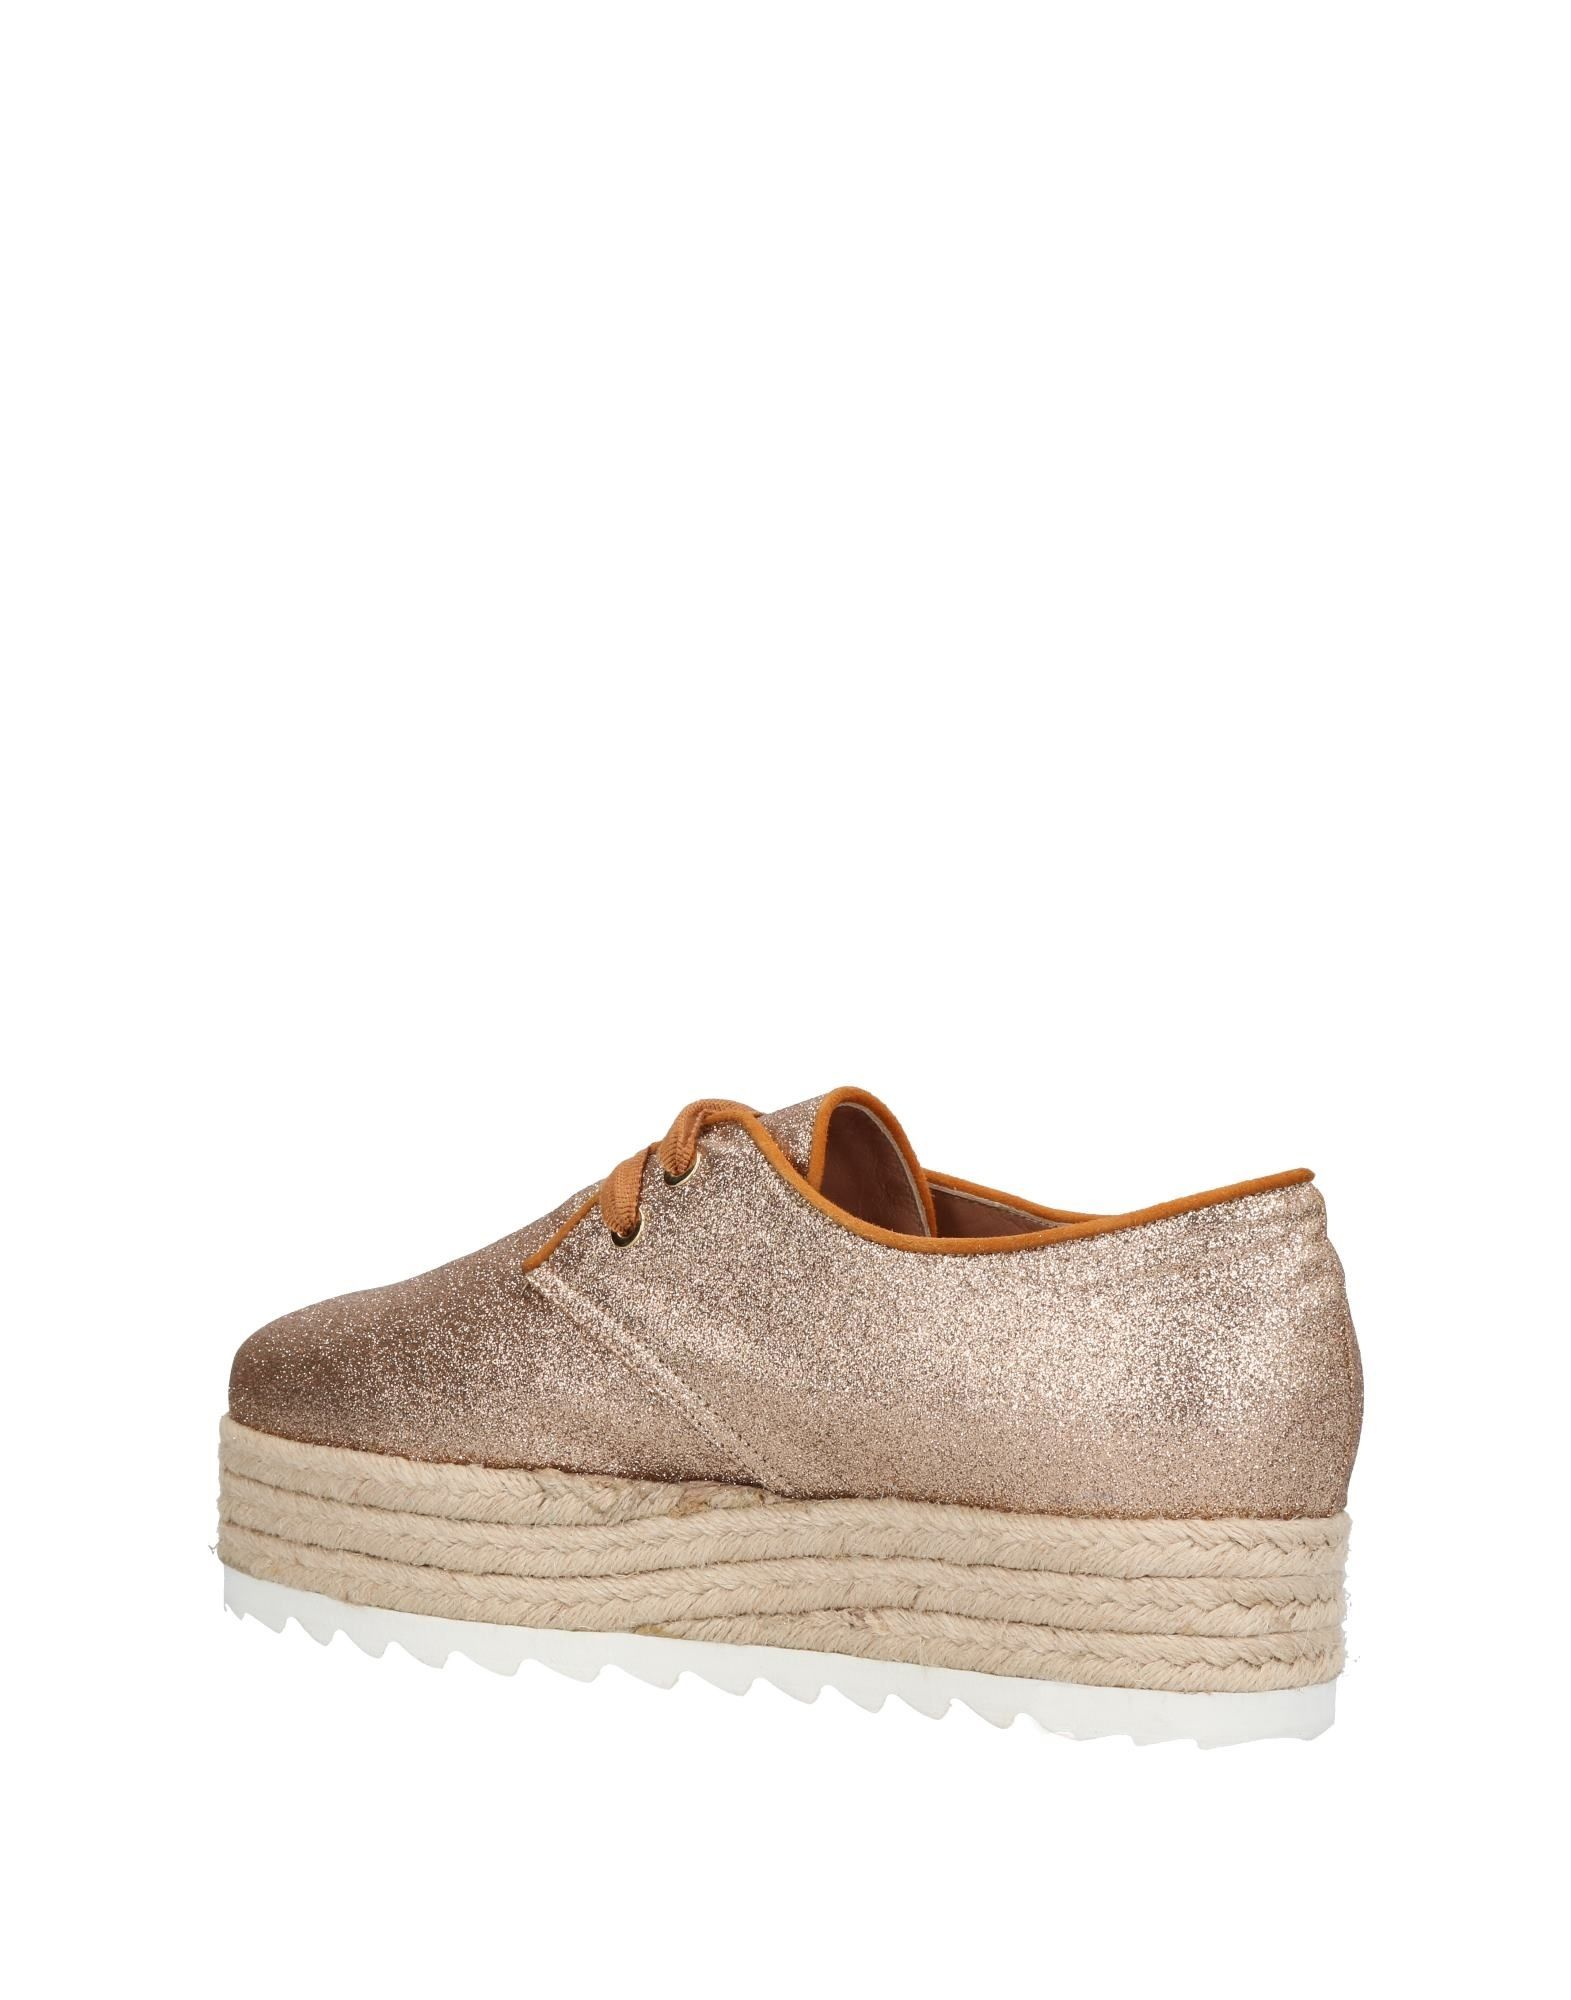 Chaussures À Lacets My Cocho Femme - Chaussures À Lacets My Cocho sur